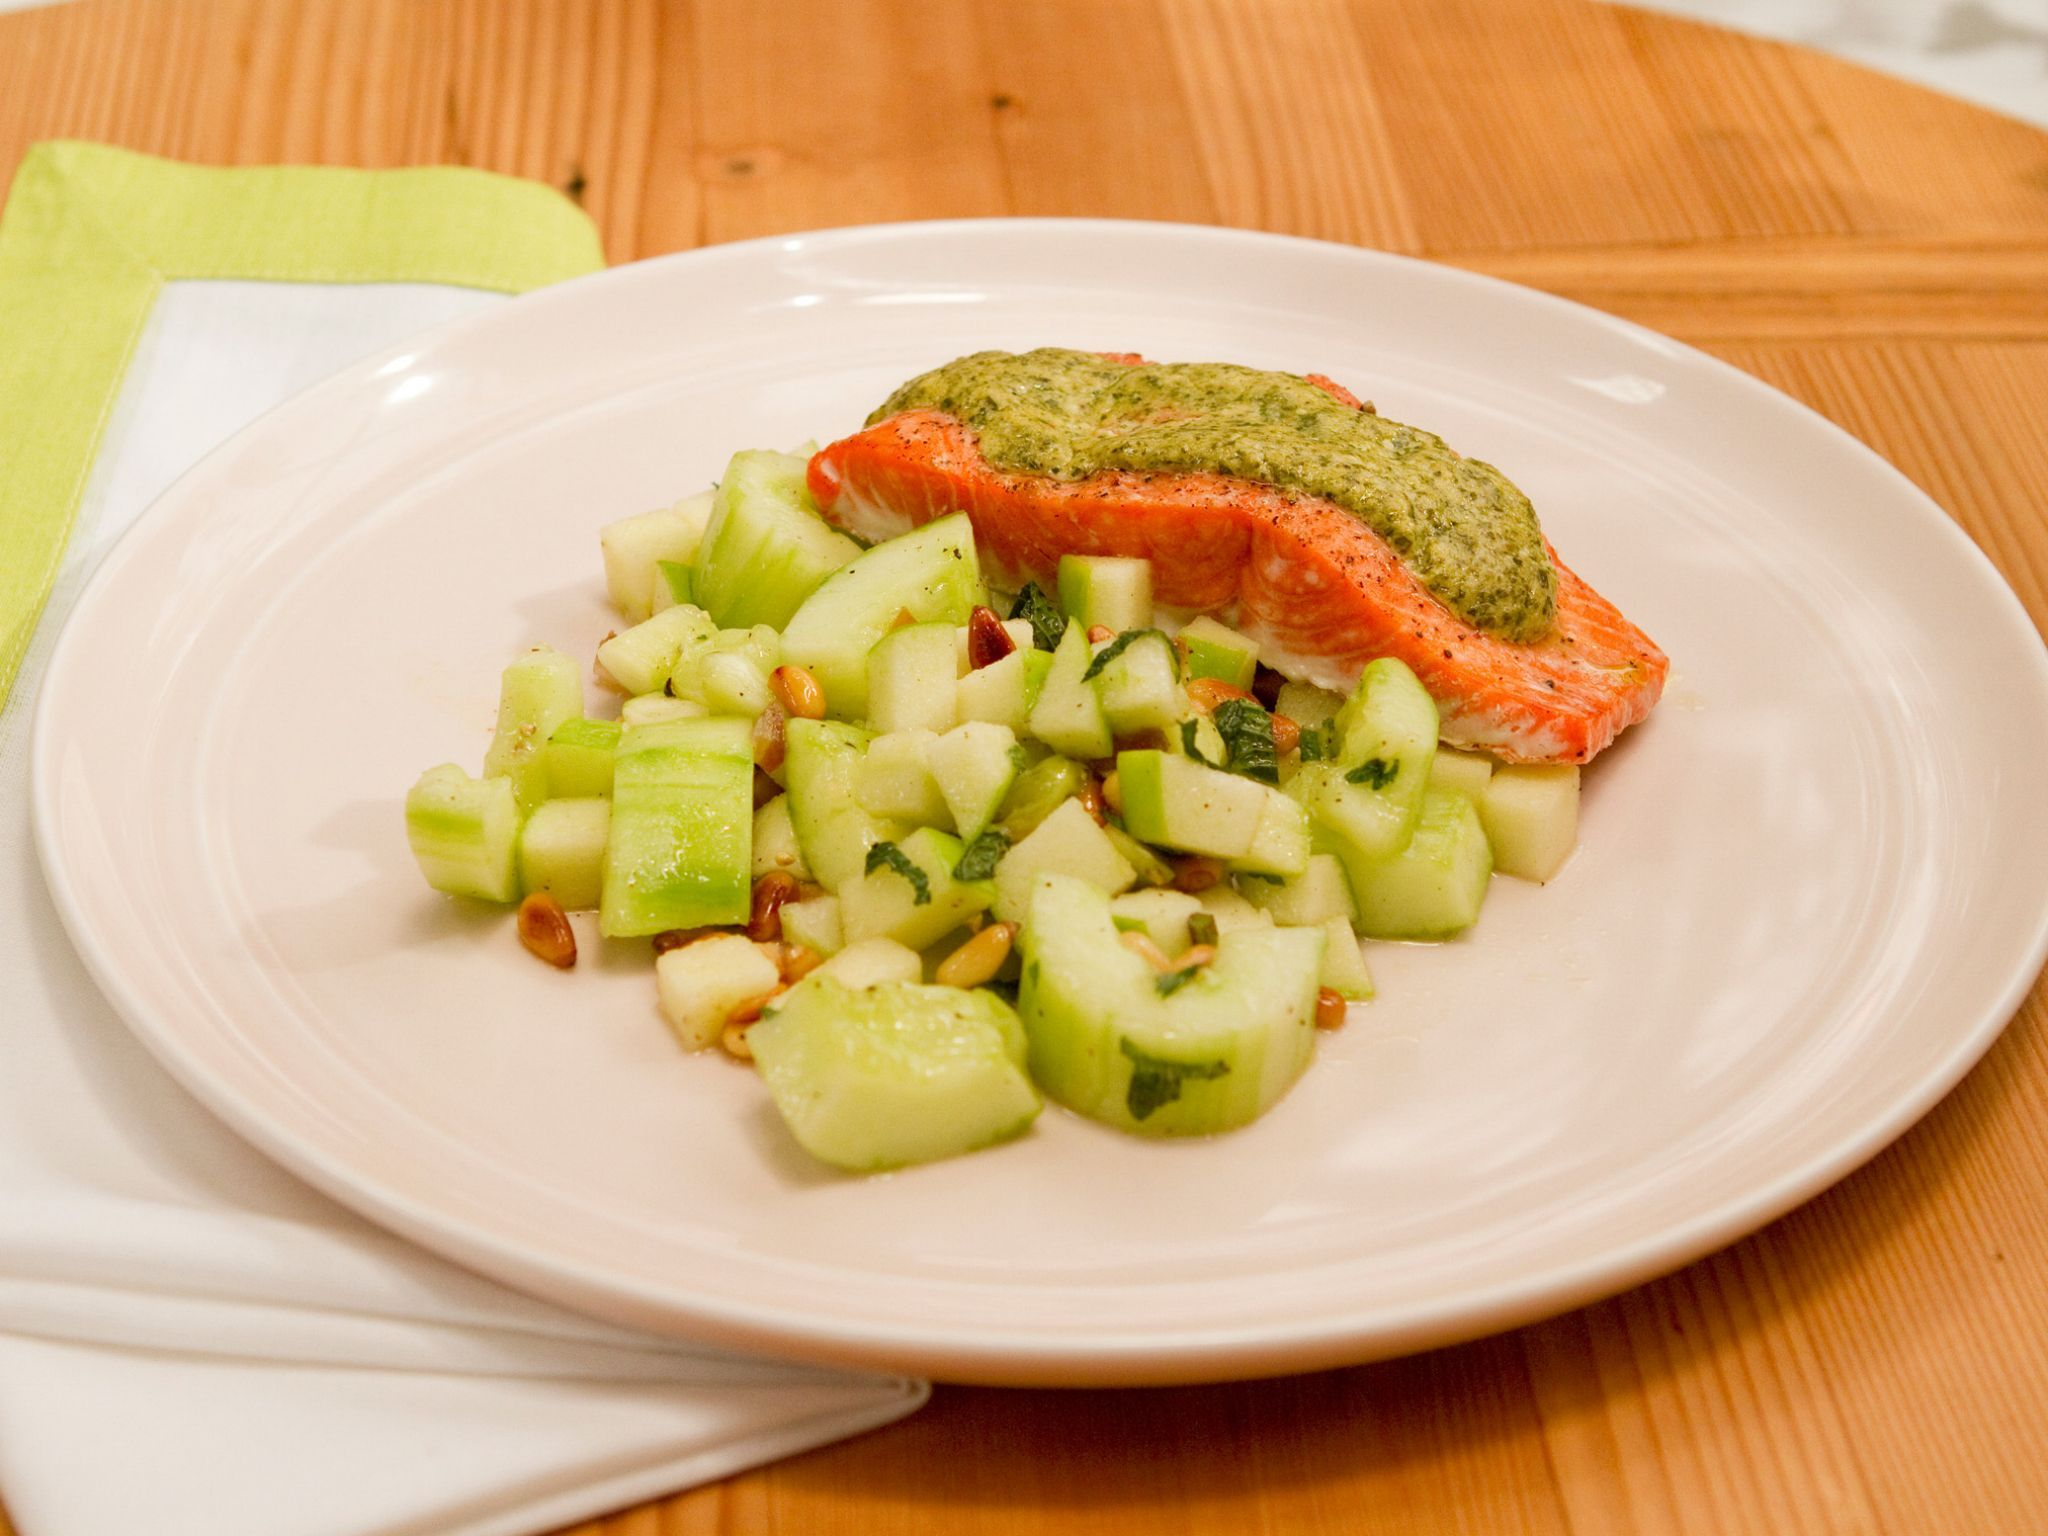 Pestorubbed Baked Salmon With Smashed Cucumber And Green Apple Salad Recipe  From Geoffrey Zakarian